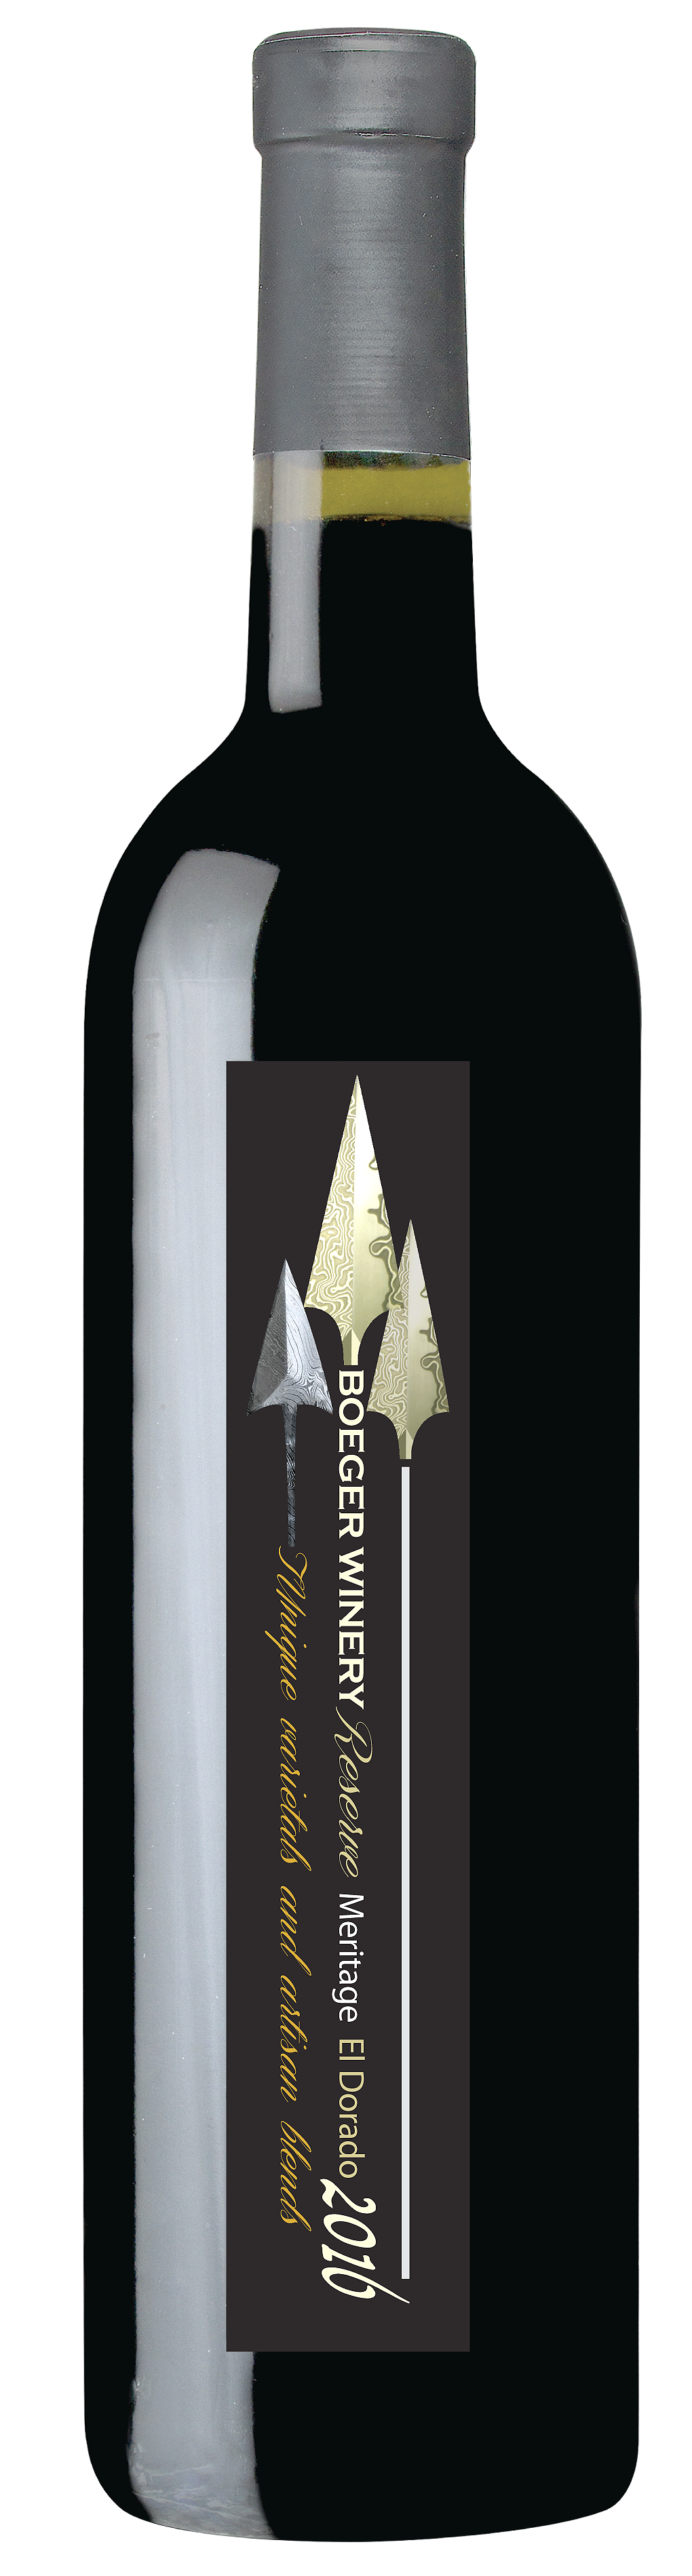 Product Image for 2016 Meritage Reserve